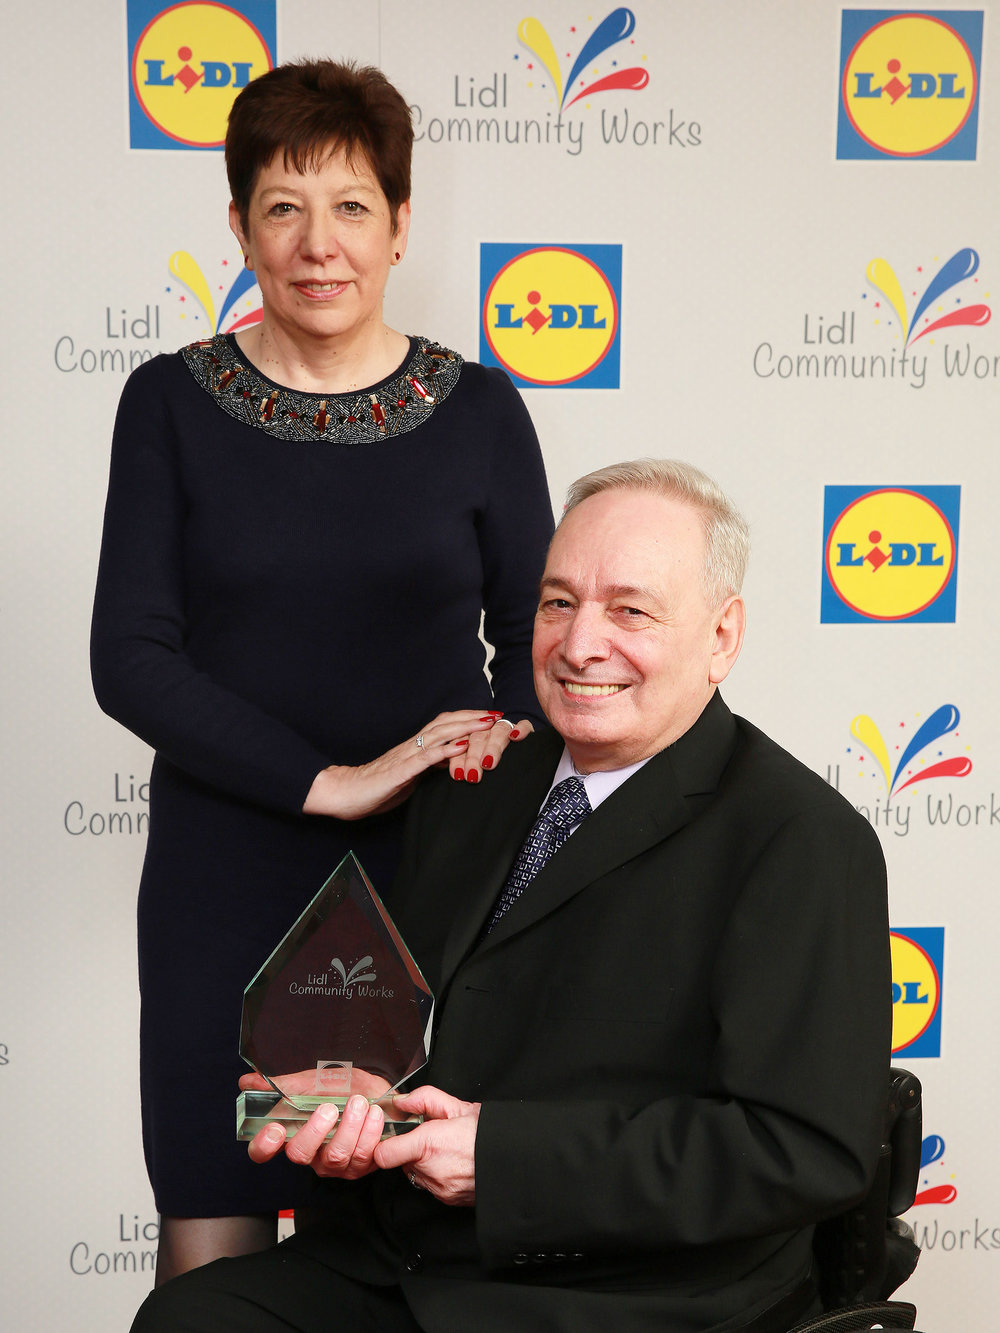 Conor Boyle from Lidl with Trevor Boyle, Lisburn (2).jpg